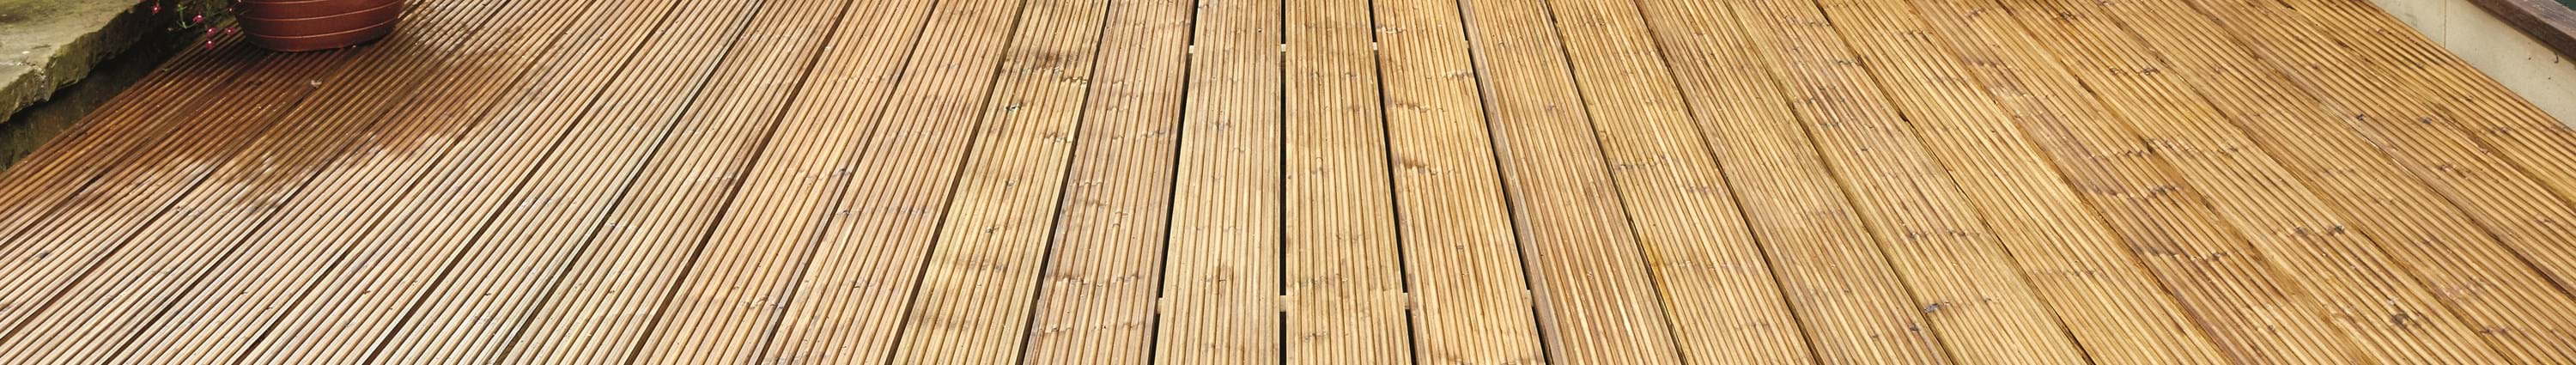 decking restorer category.jpg